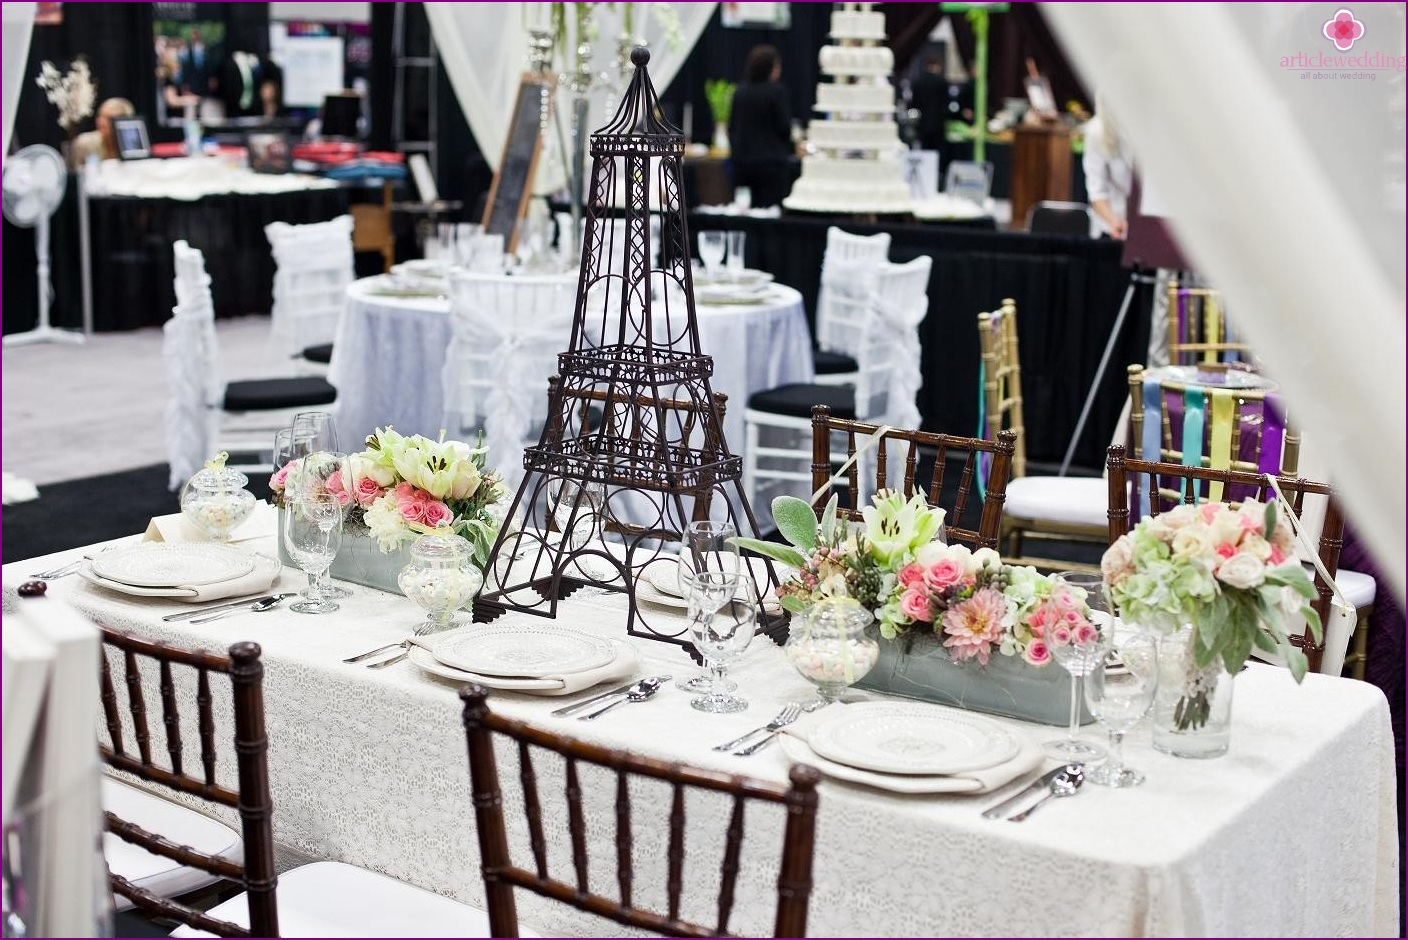 Decor wedding in the style of France